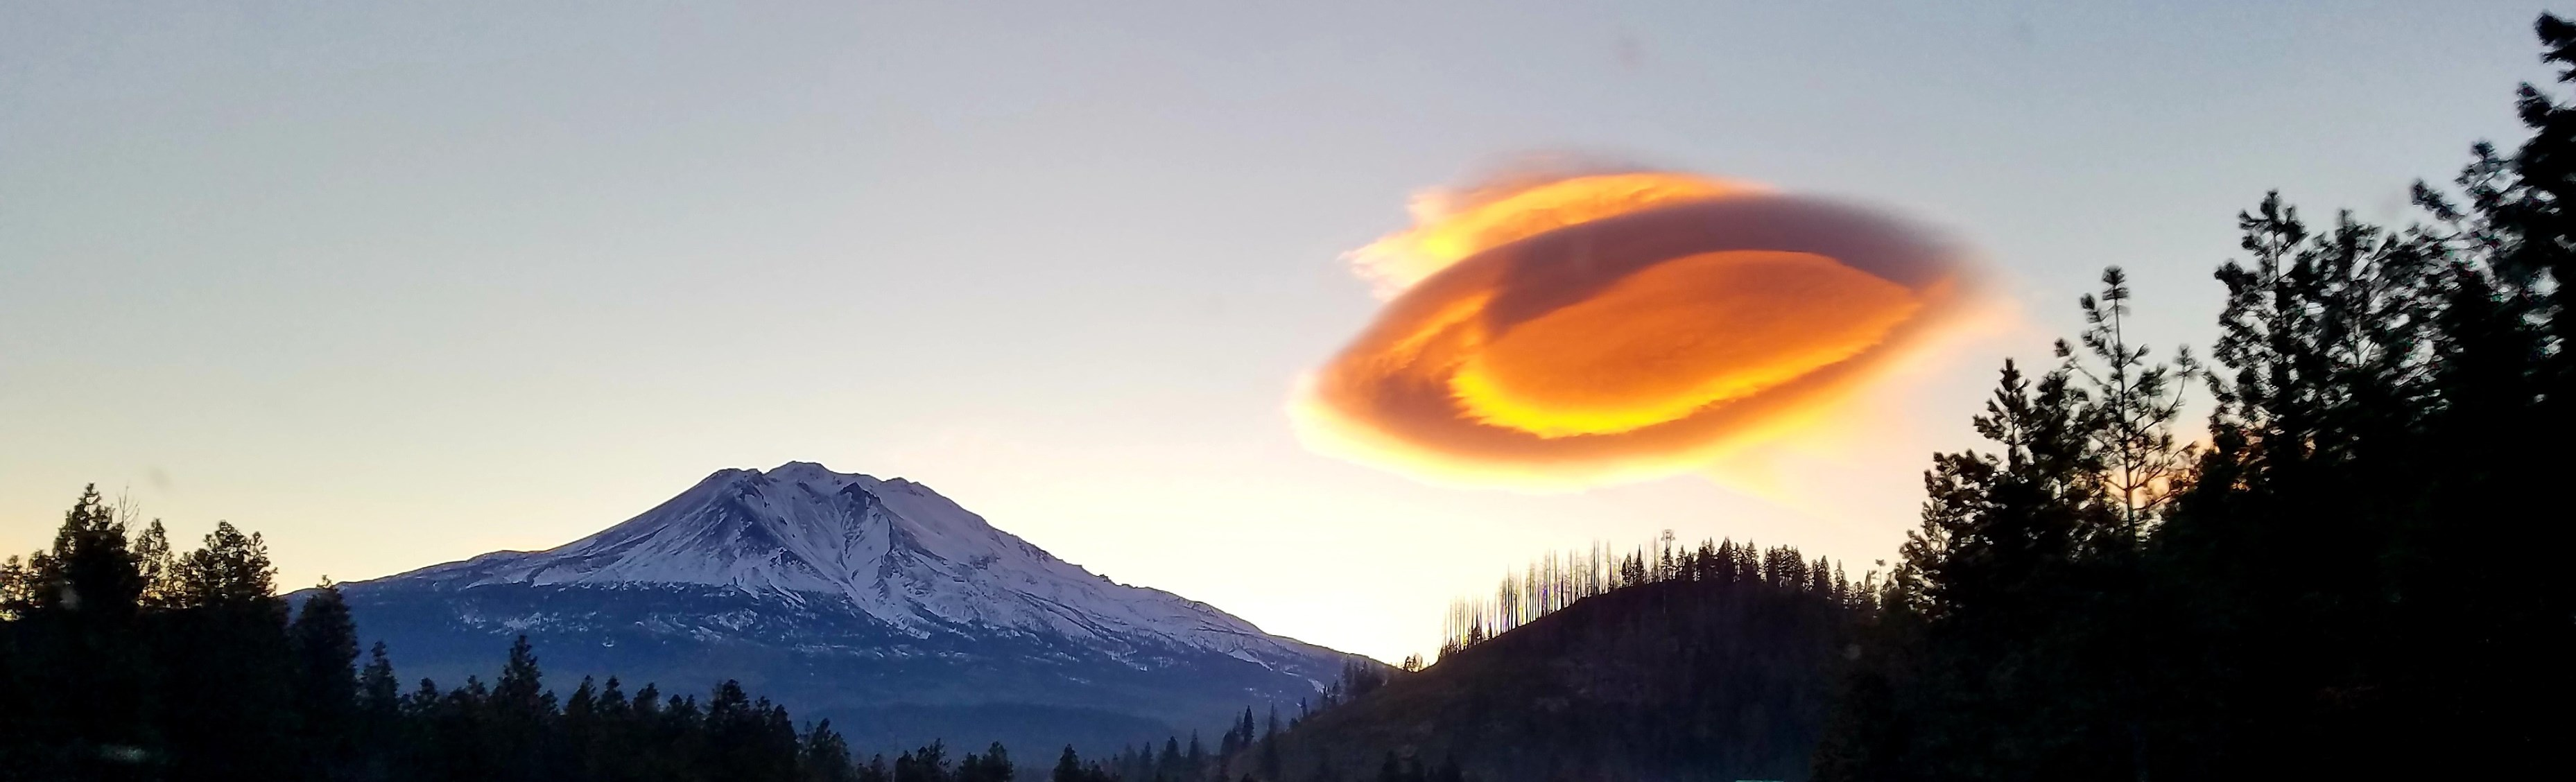 Westlake Legal Group 86493347_2604300783135298_6096232870060228608_o Cloud over Mt. Shasta appears 'out of this world' Julia Musto fox-news/us/us-regions/west/california fox-news/us/us-regions/southwest/new-mexico fox-news/us/environment fox-news/us/crime/police-and-law-enforcement fox-news/topic/aliens fox-news/tech/companies/facebook fox-news/science/air-and-space/ufos fox-news/science fox news fnc/tech fnc article 14d036f4-636d-5e55-b652-4205a552b252